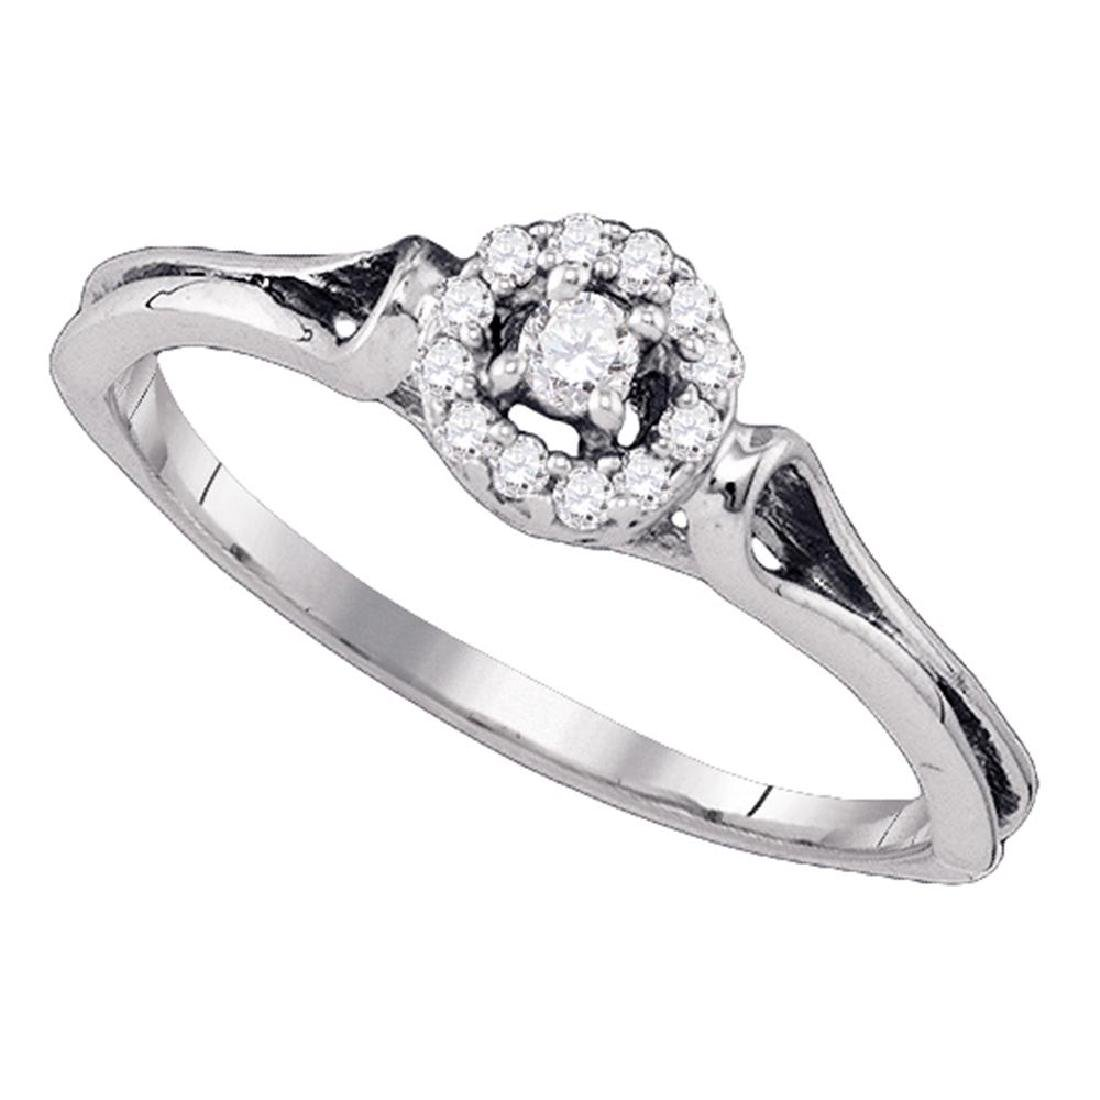 0.10 CTW Diamond Solitaire Bridal Engagement Ring 10KT